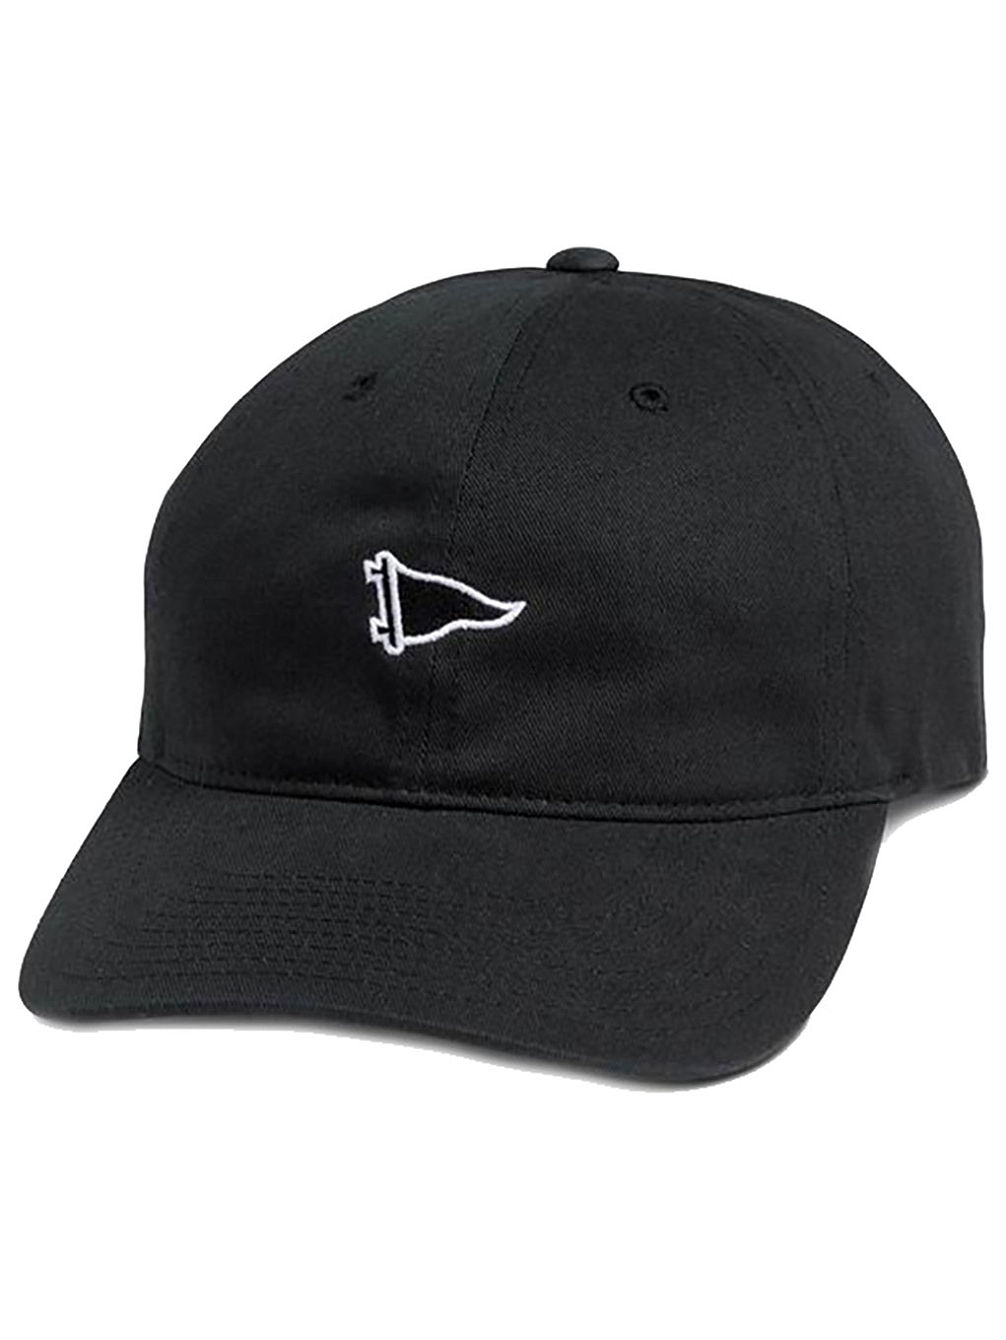 Pennant Curved Cap